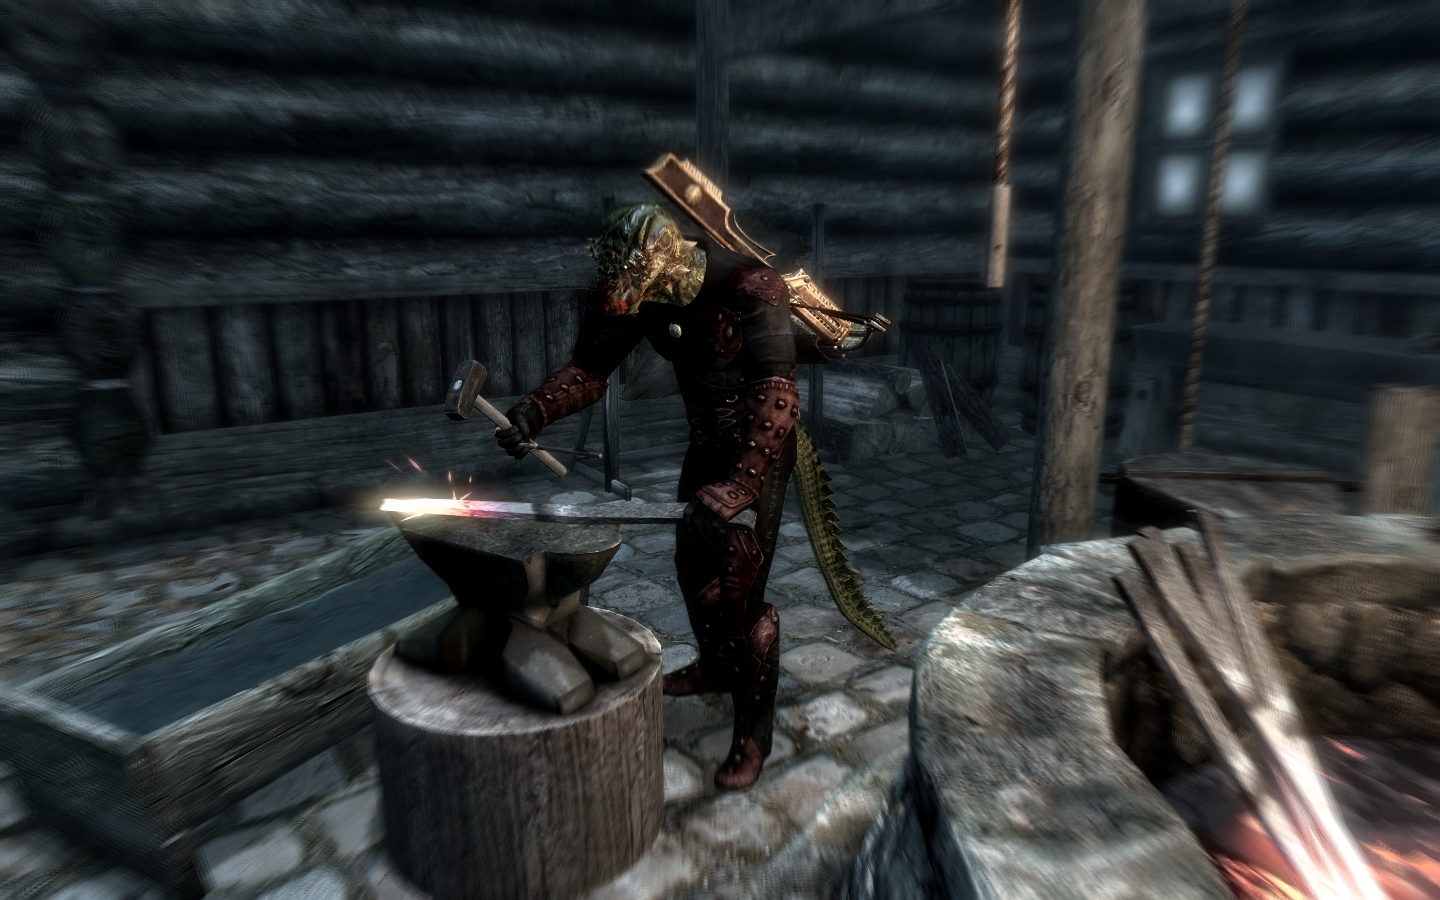 Images of Smithing | 1440x900